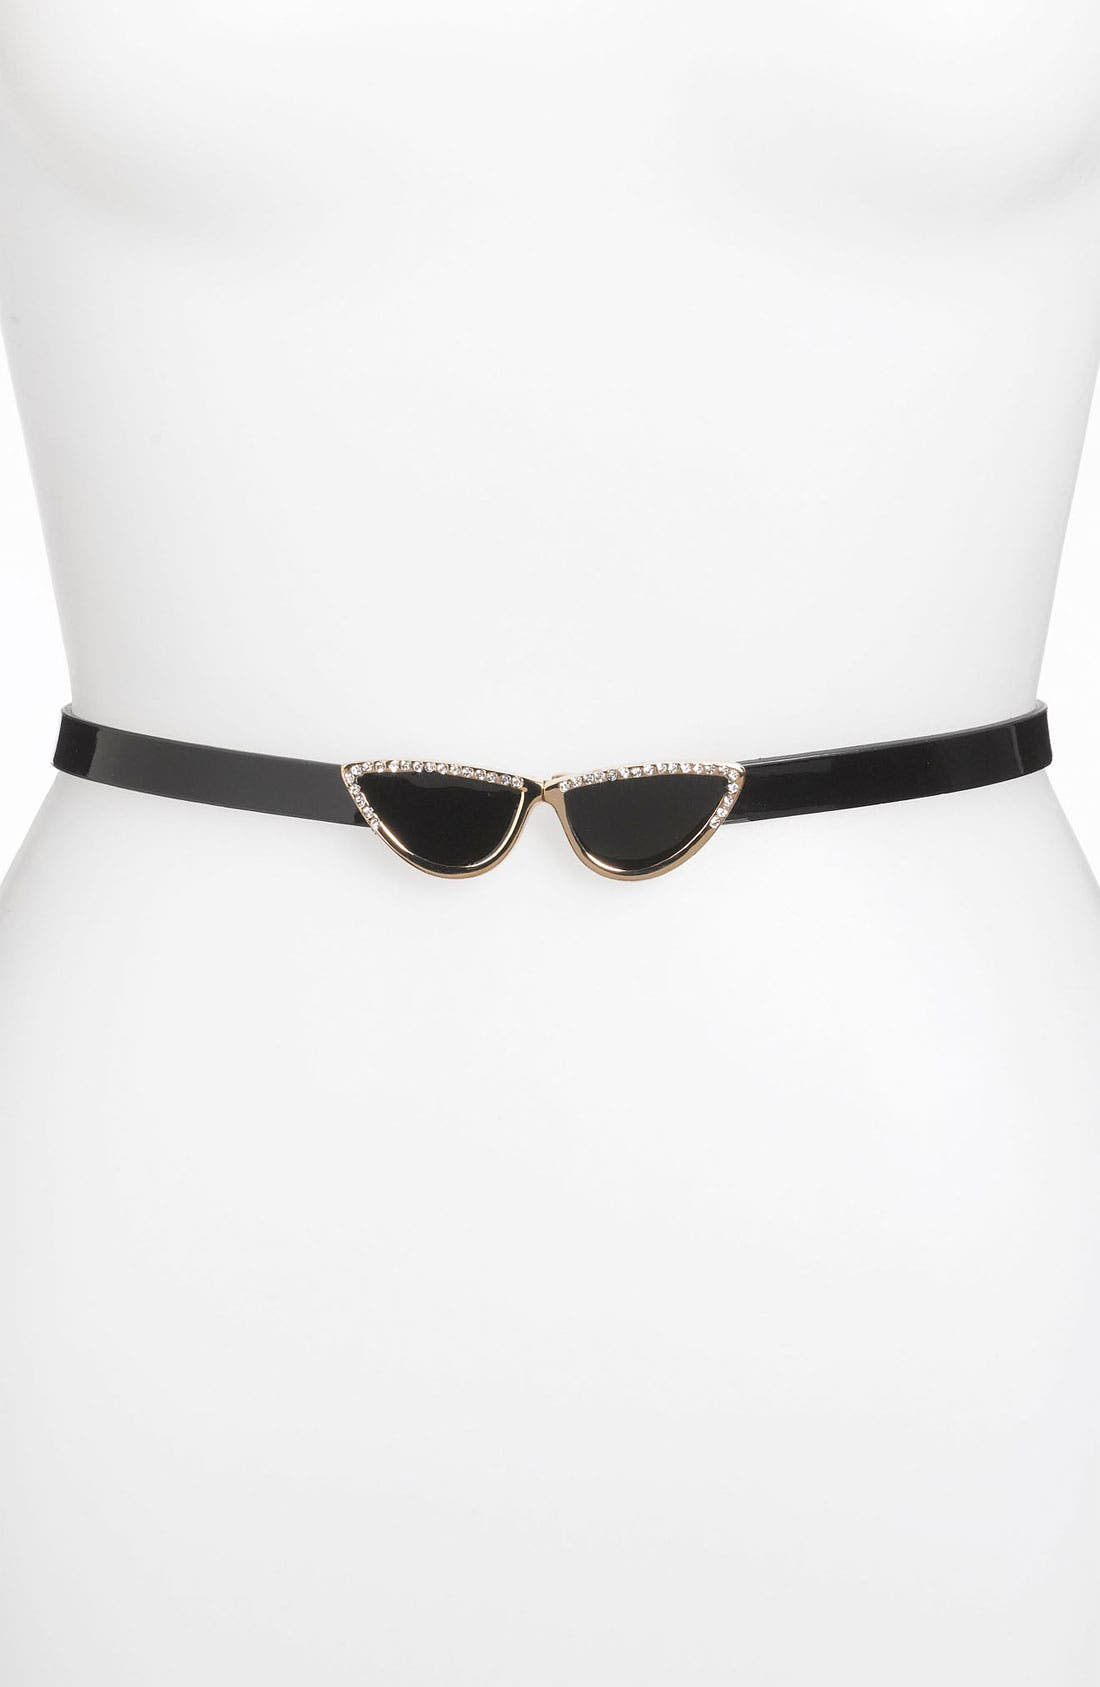 Main Image - kate spade new york 'sunglasses' patent leather belt